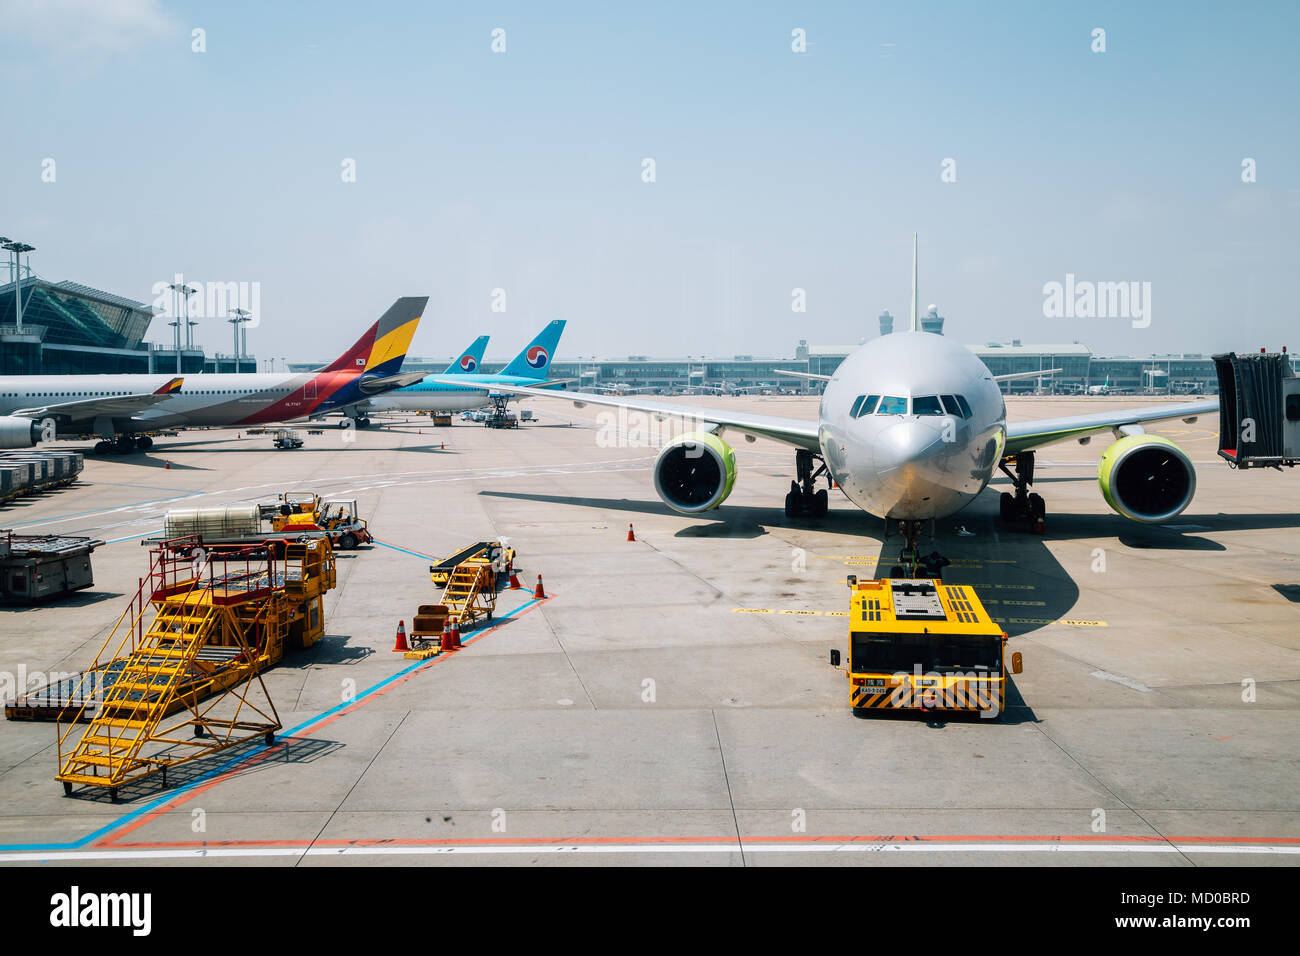 Incheon, Korea - June 8, 2017 : Incheon International Airport - Stock Image